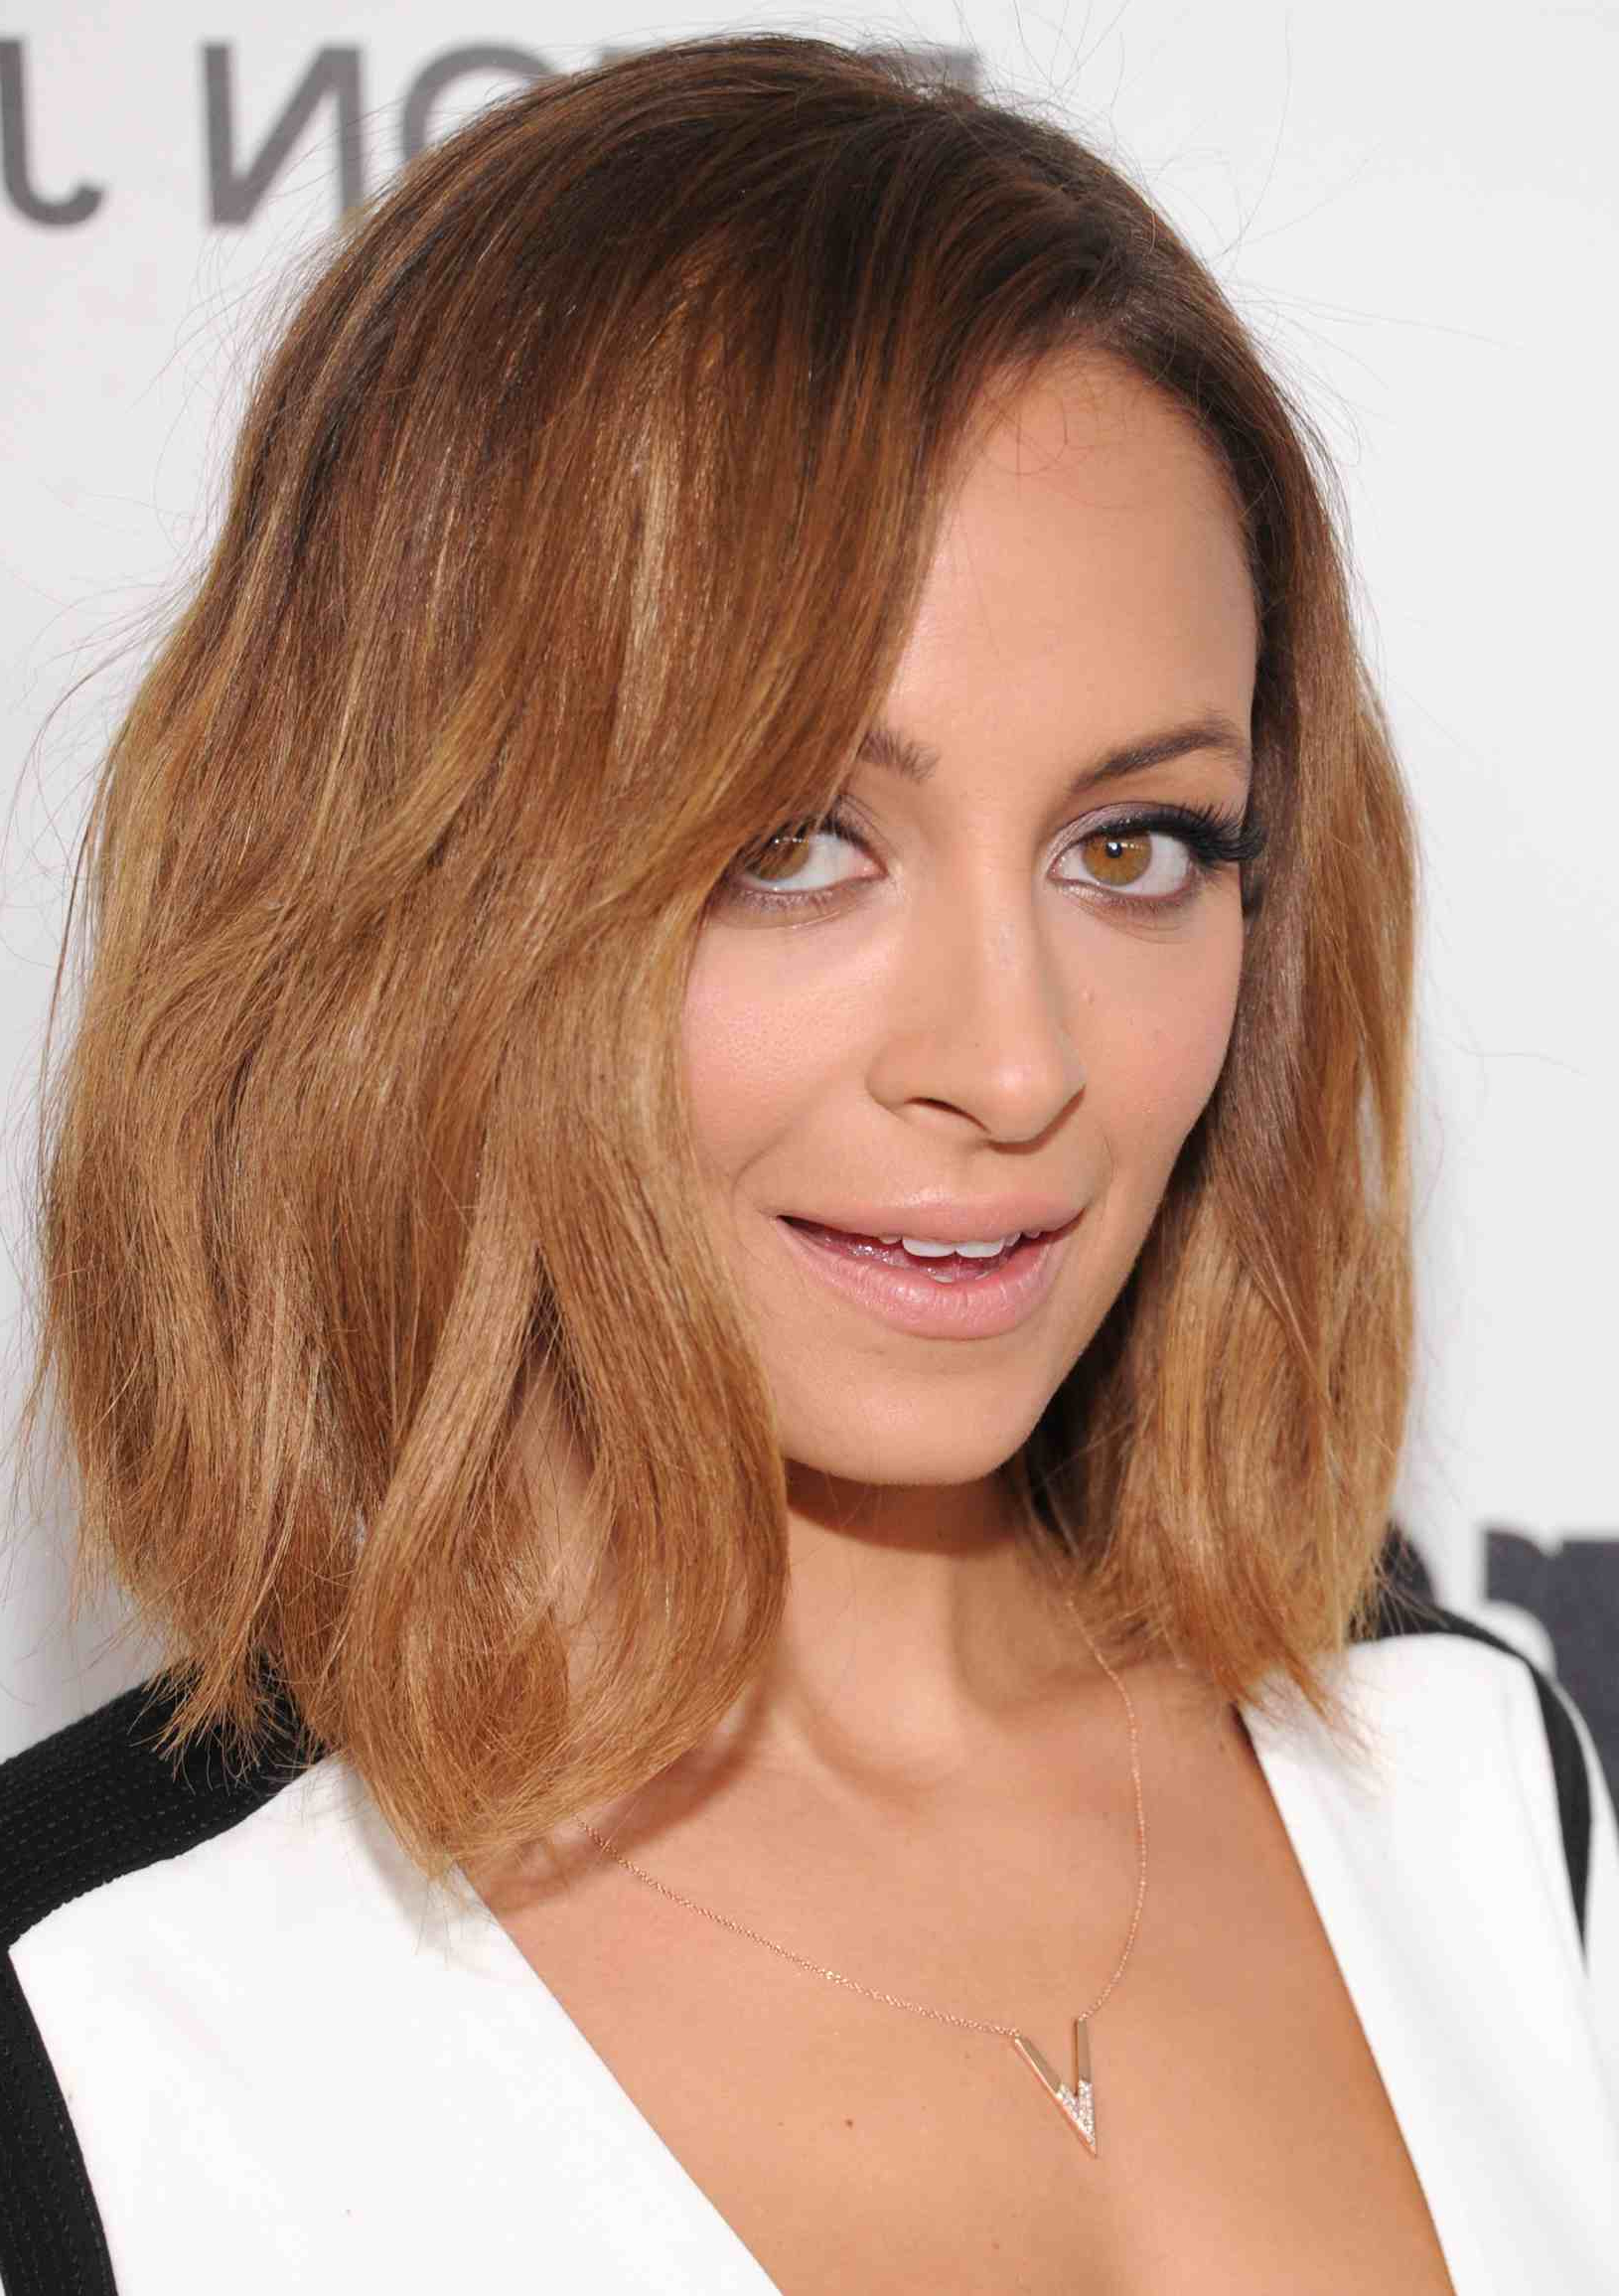 The Most Modern Long Bob Hairstyles Of The Moment For Widely Used Two Layer Bob Hairstyles For Thick Hair (View 19 of 20)